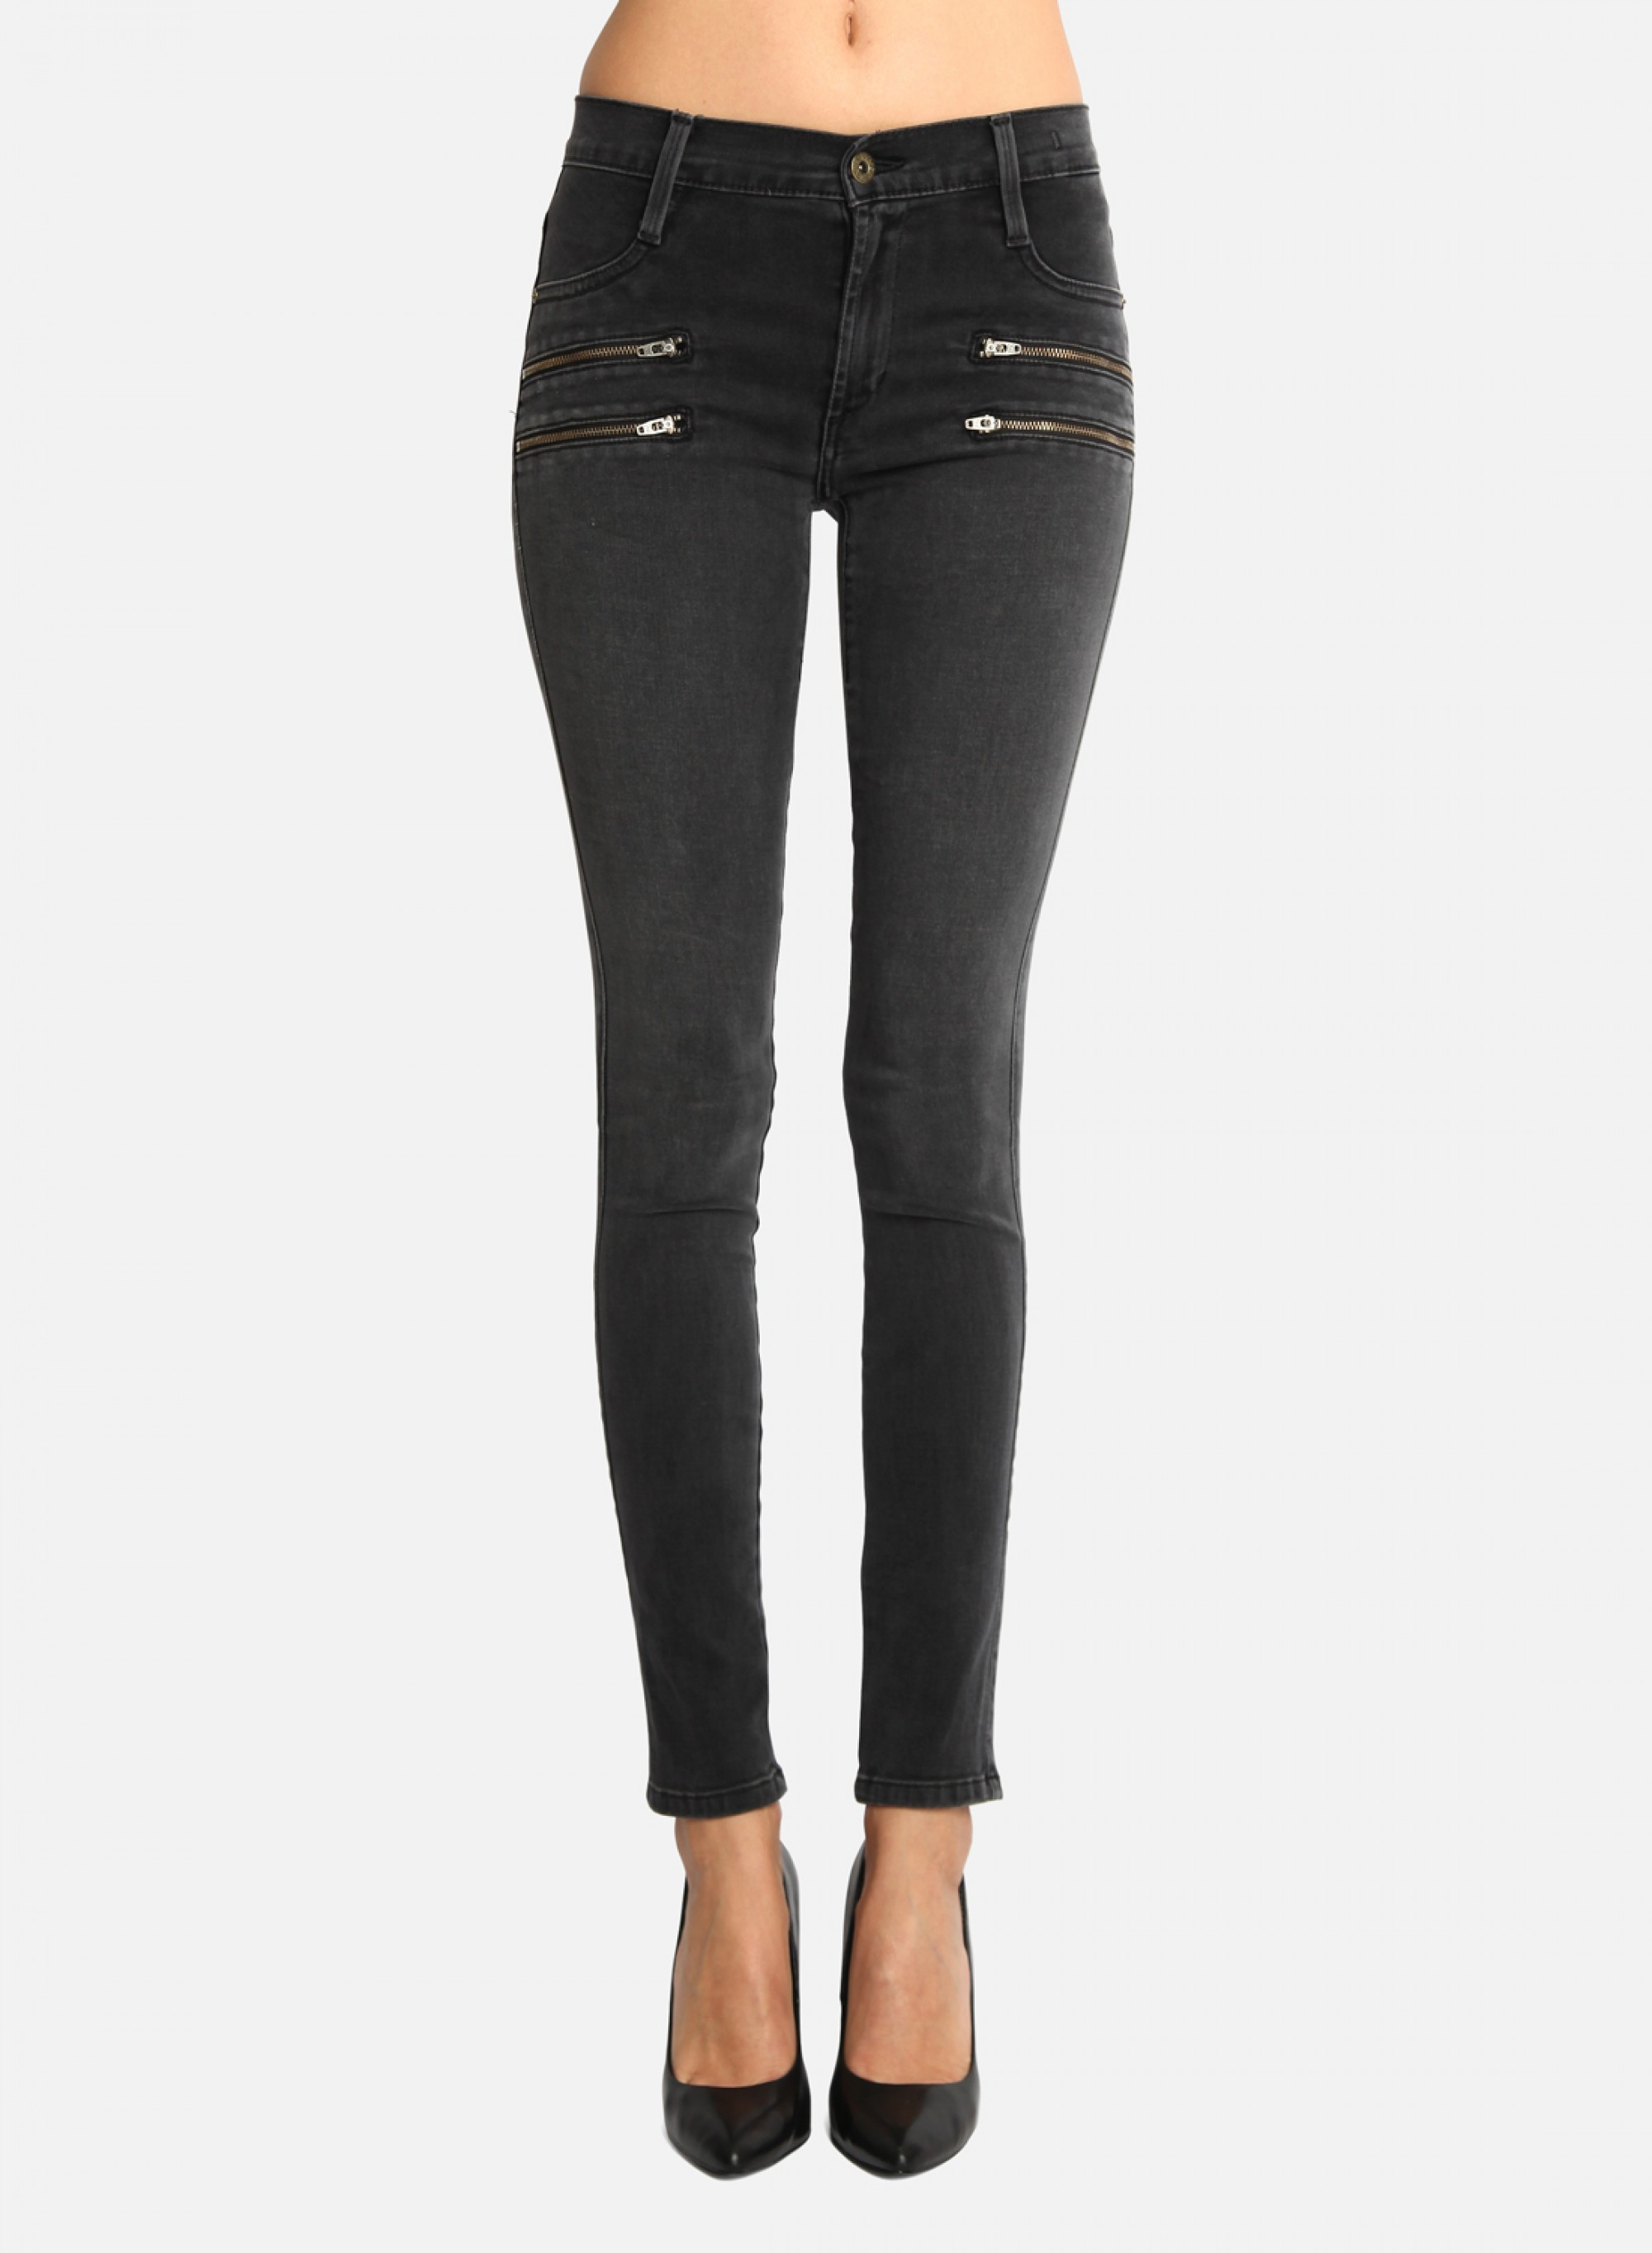 Womens Double Front Zip Legging Skinny Jeans James Jeans Clearance Limited Edition 53piDi